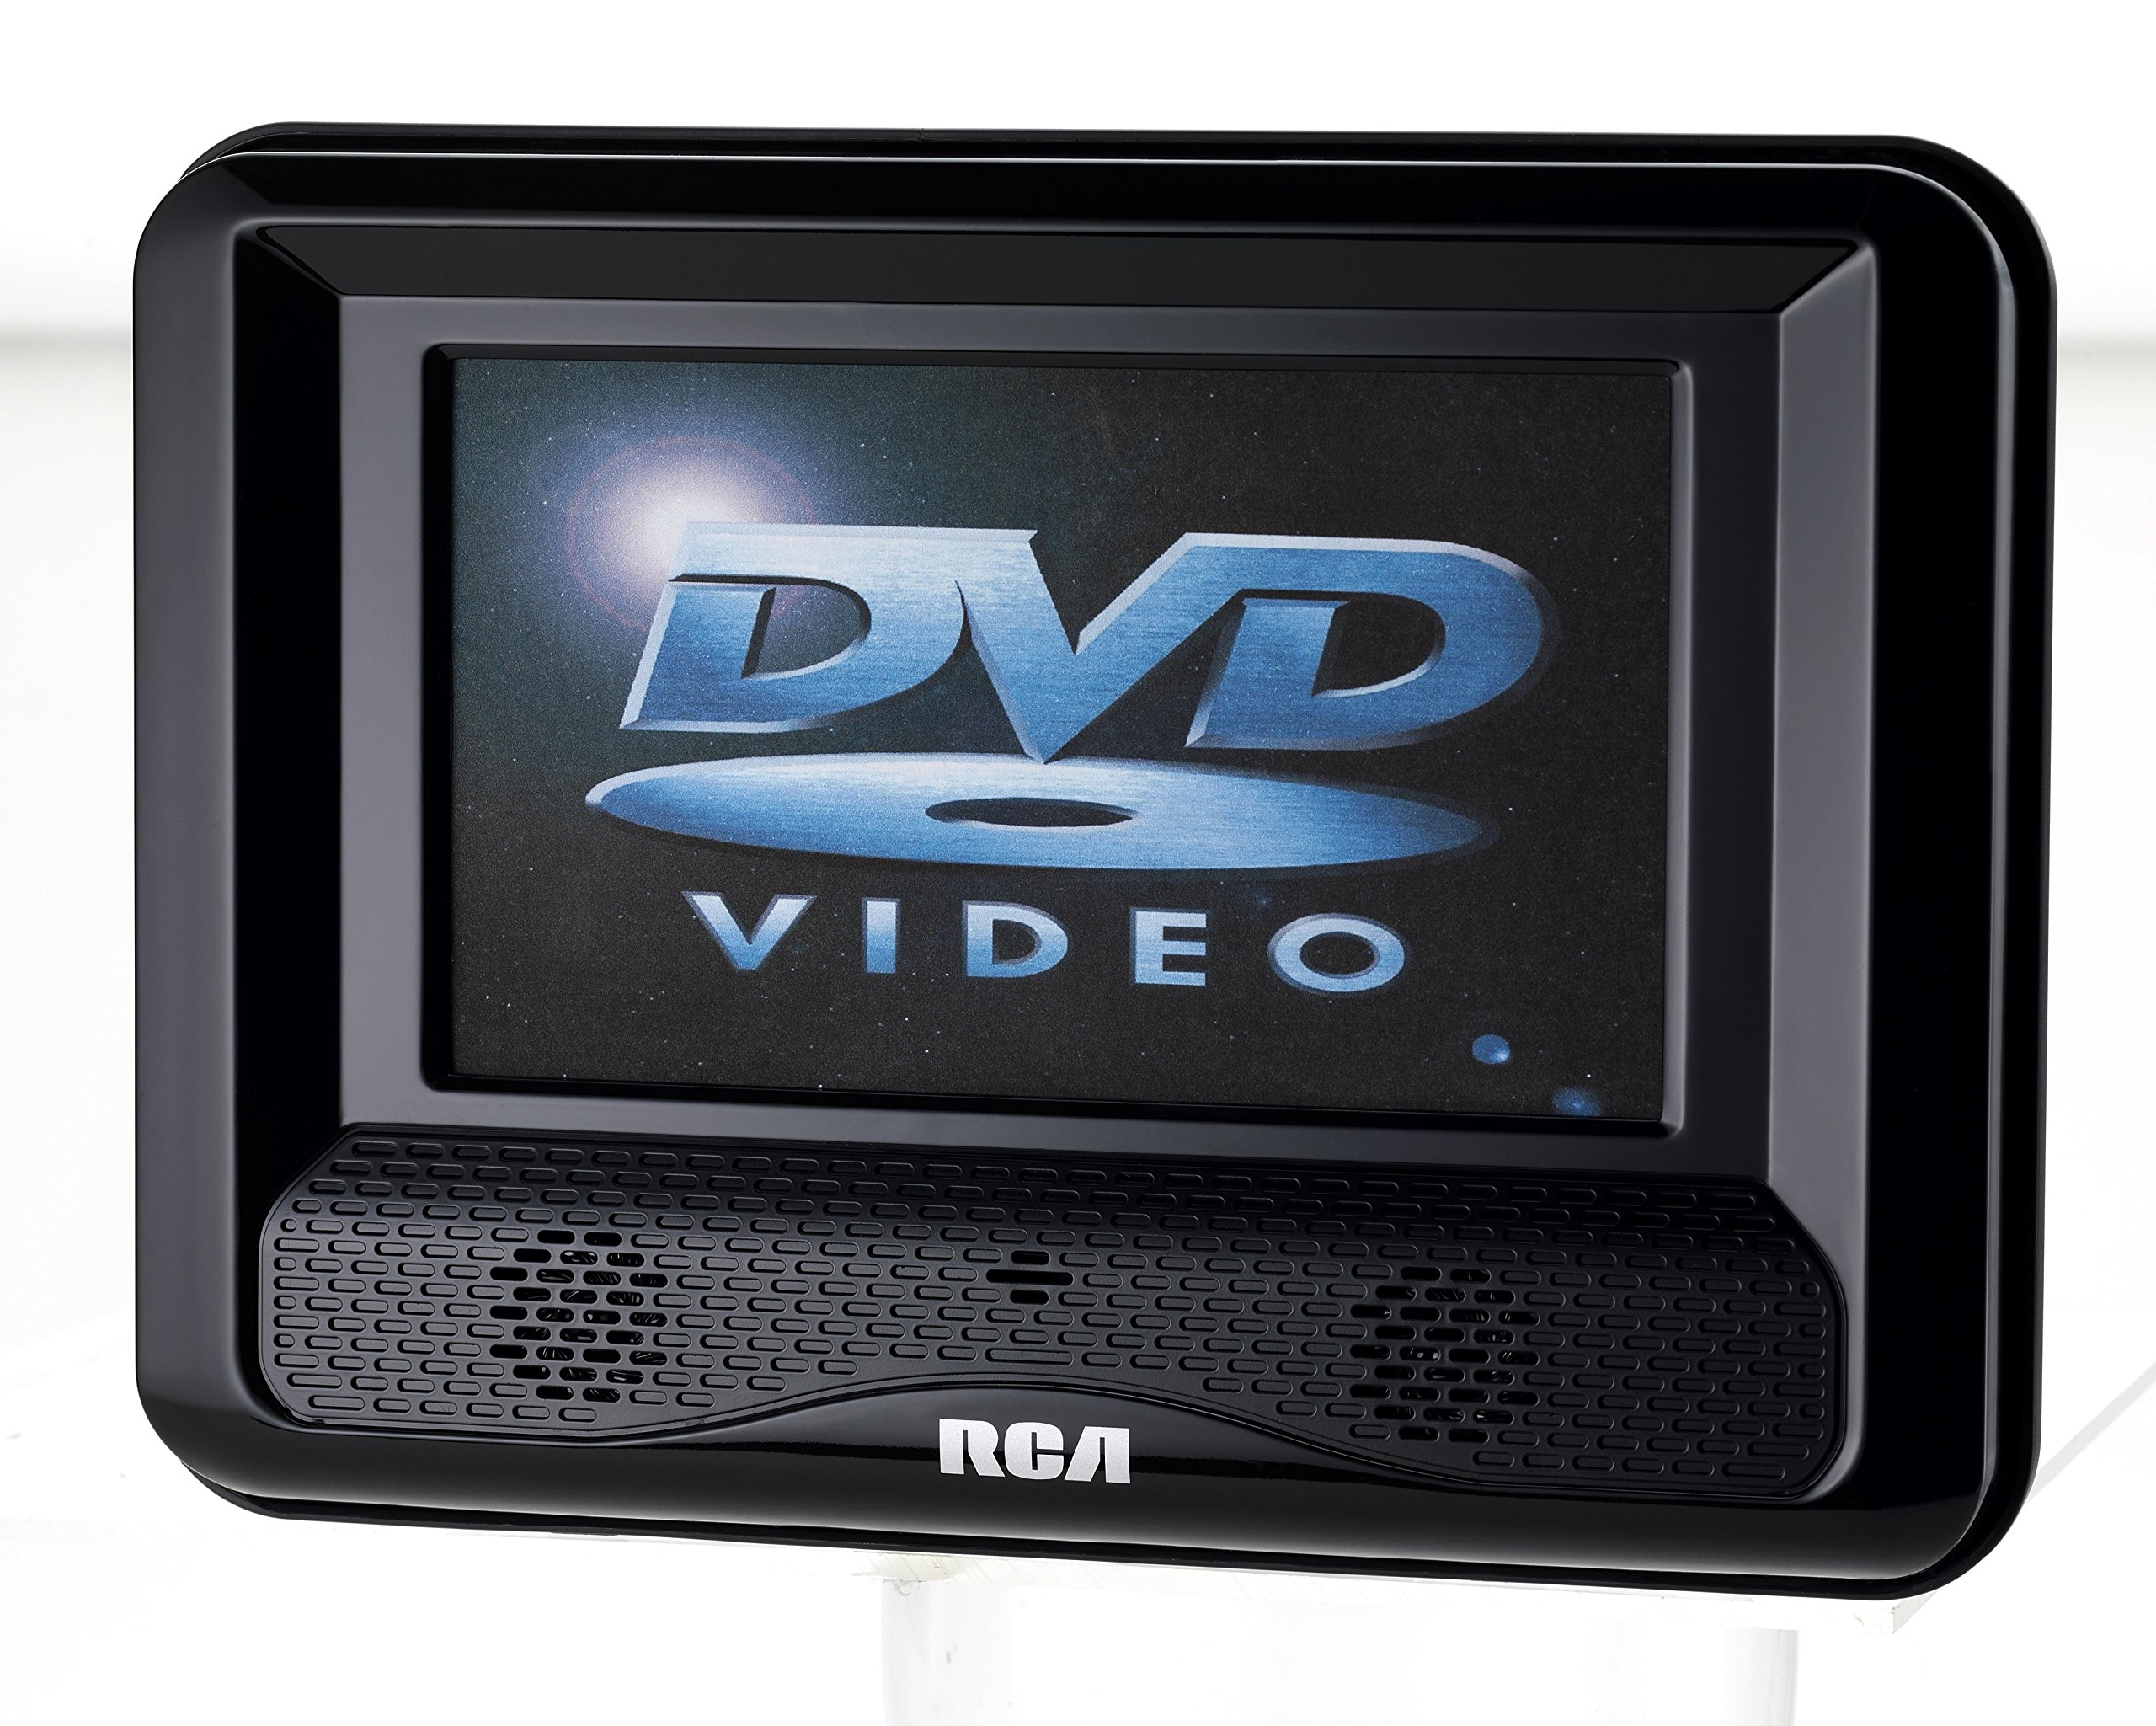 RCA (BRM97071U) Portable & Mobile Blu-Ray/DVD Player - 7'' LCD Screen (HD,1080p) - USB Media File Playback by RCA